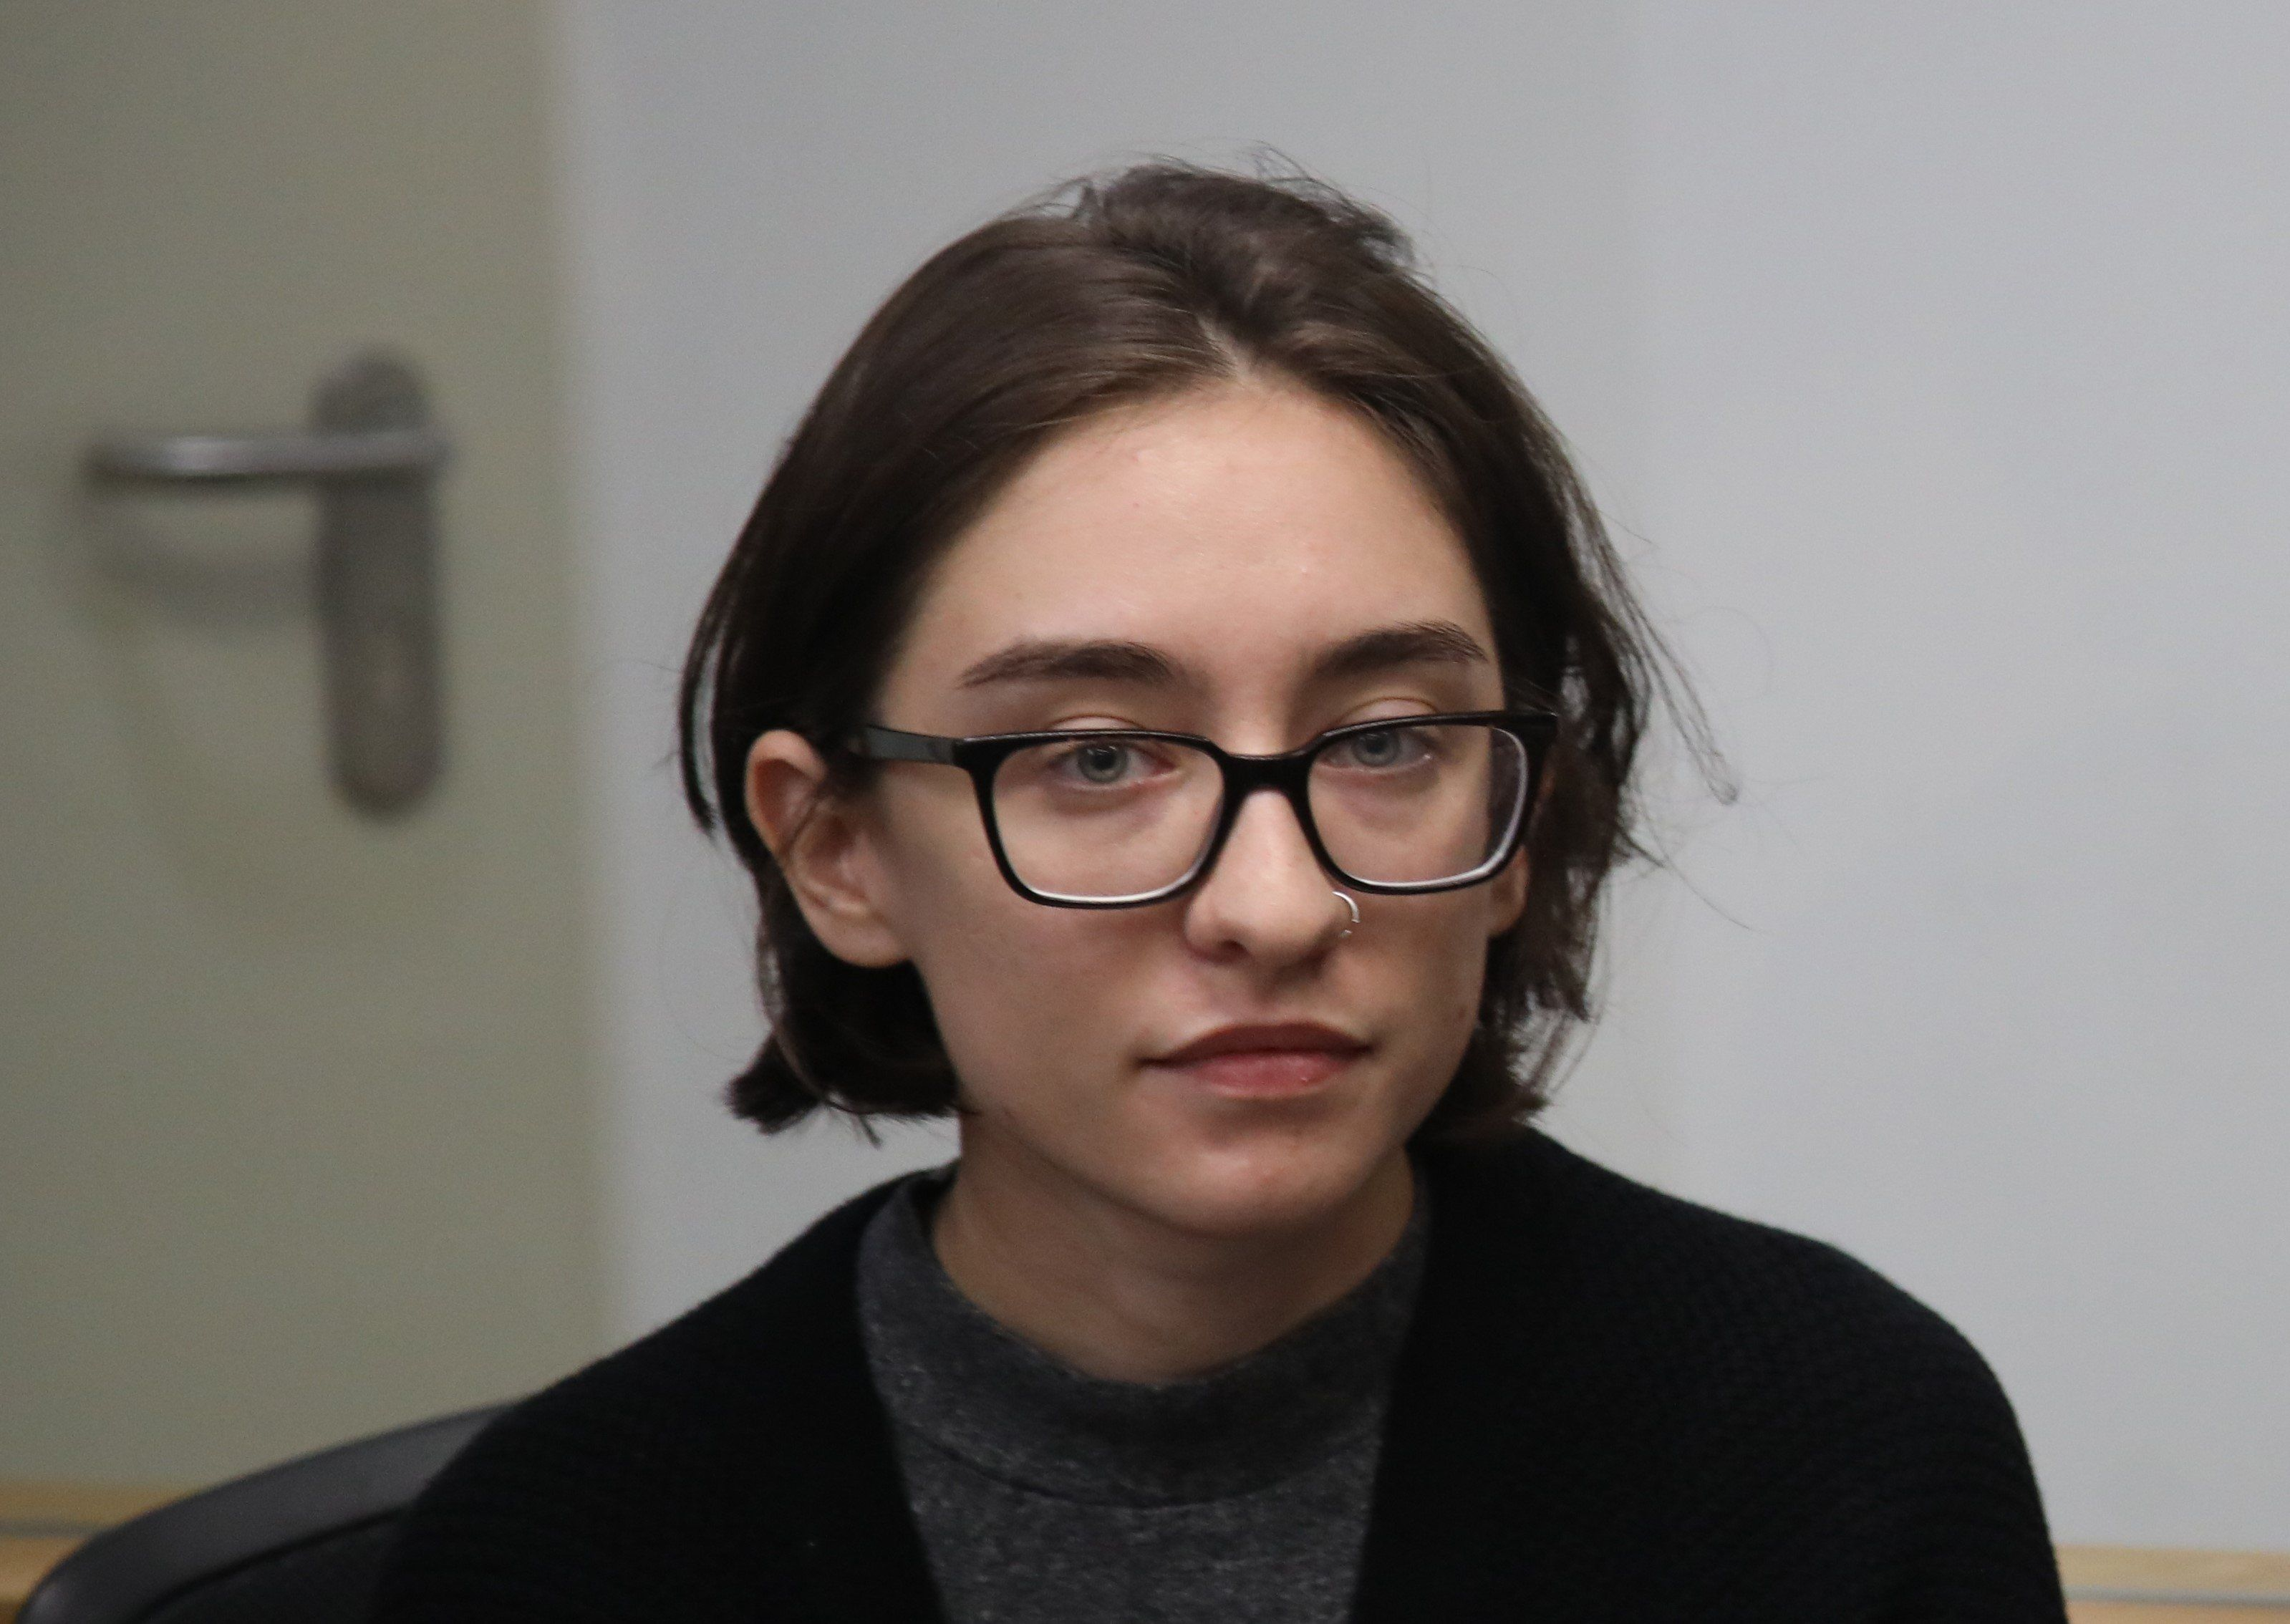 Lara Alqasem is challenging her detention in the Israeli courts.